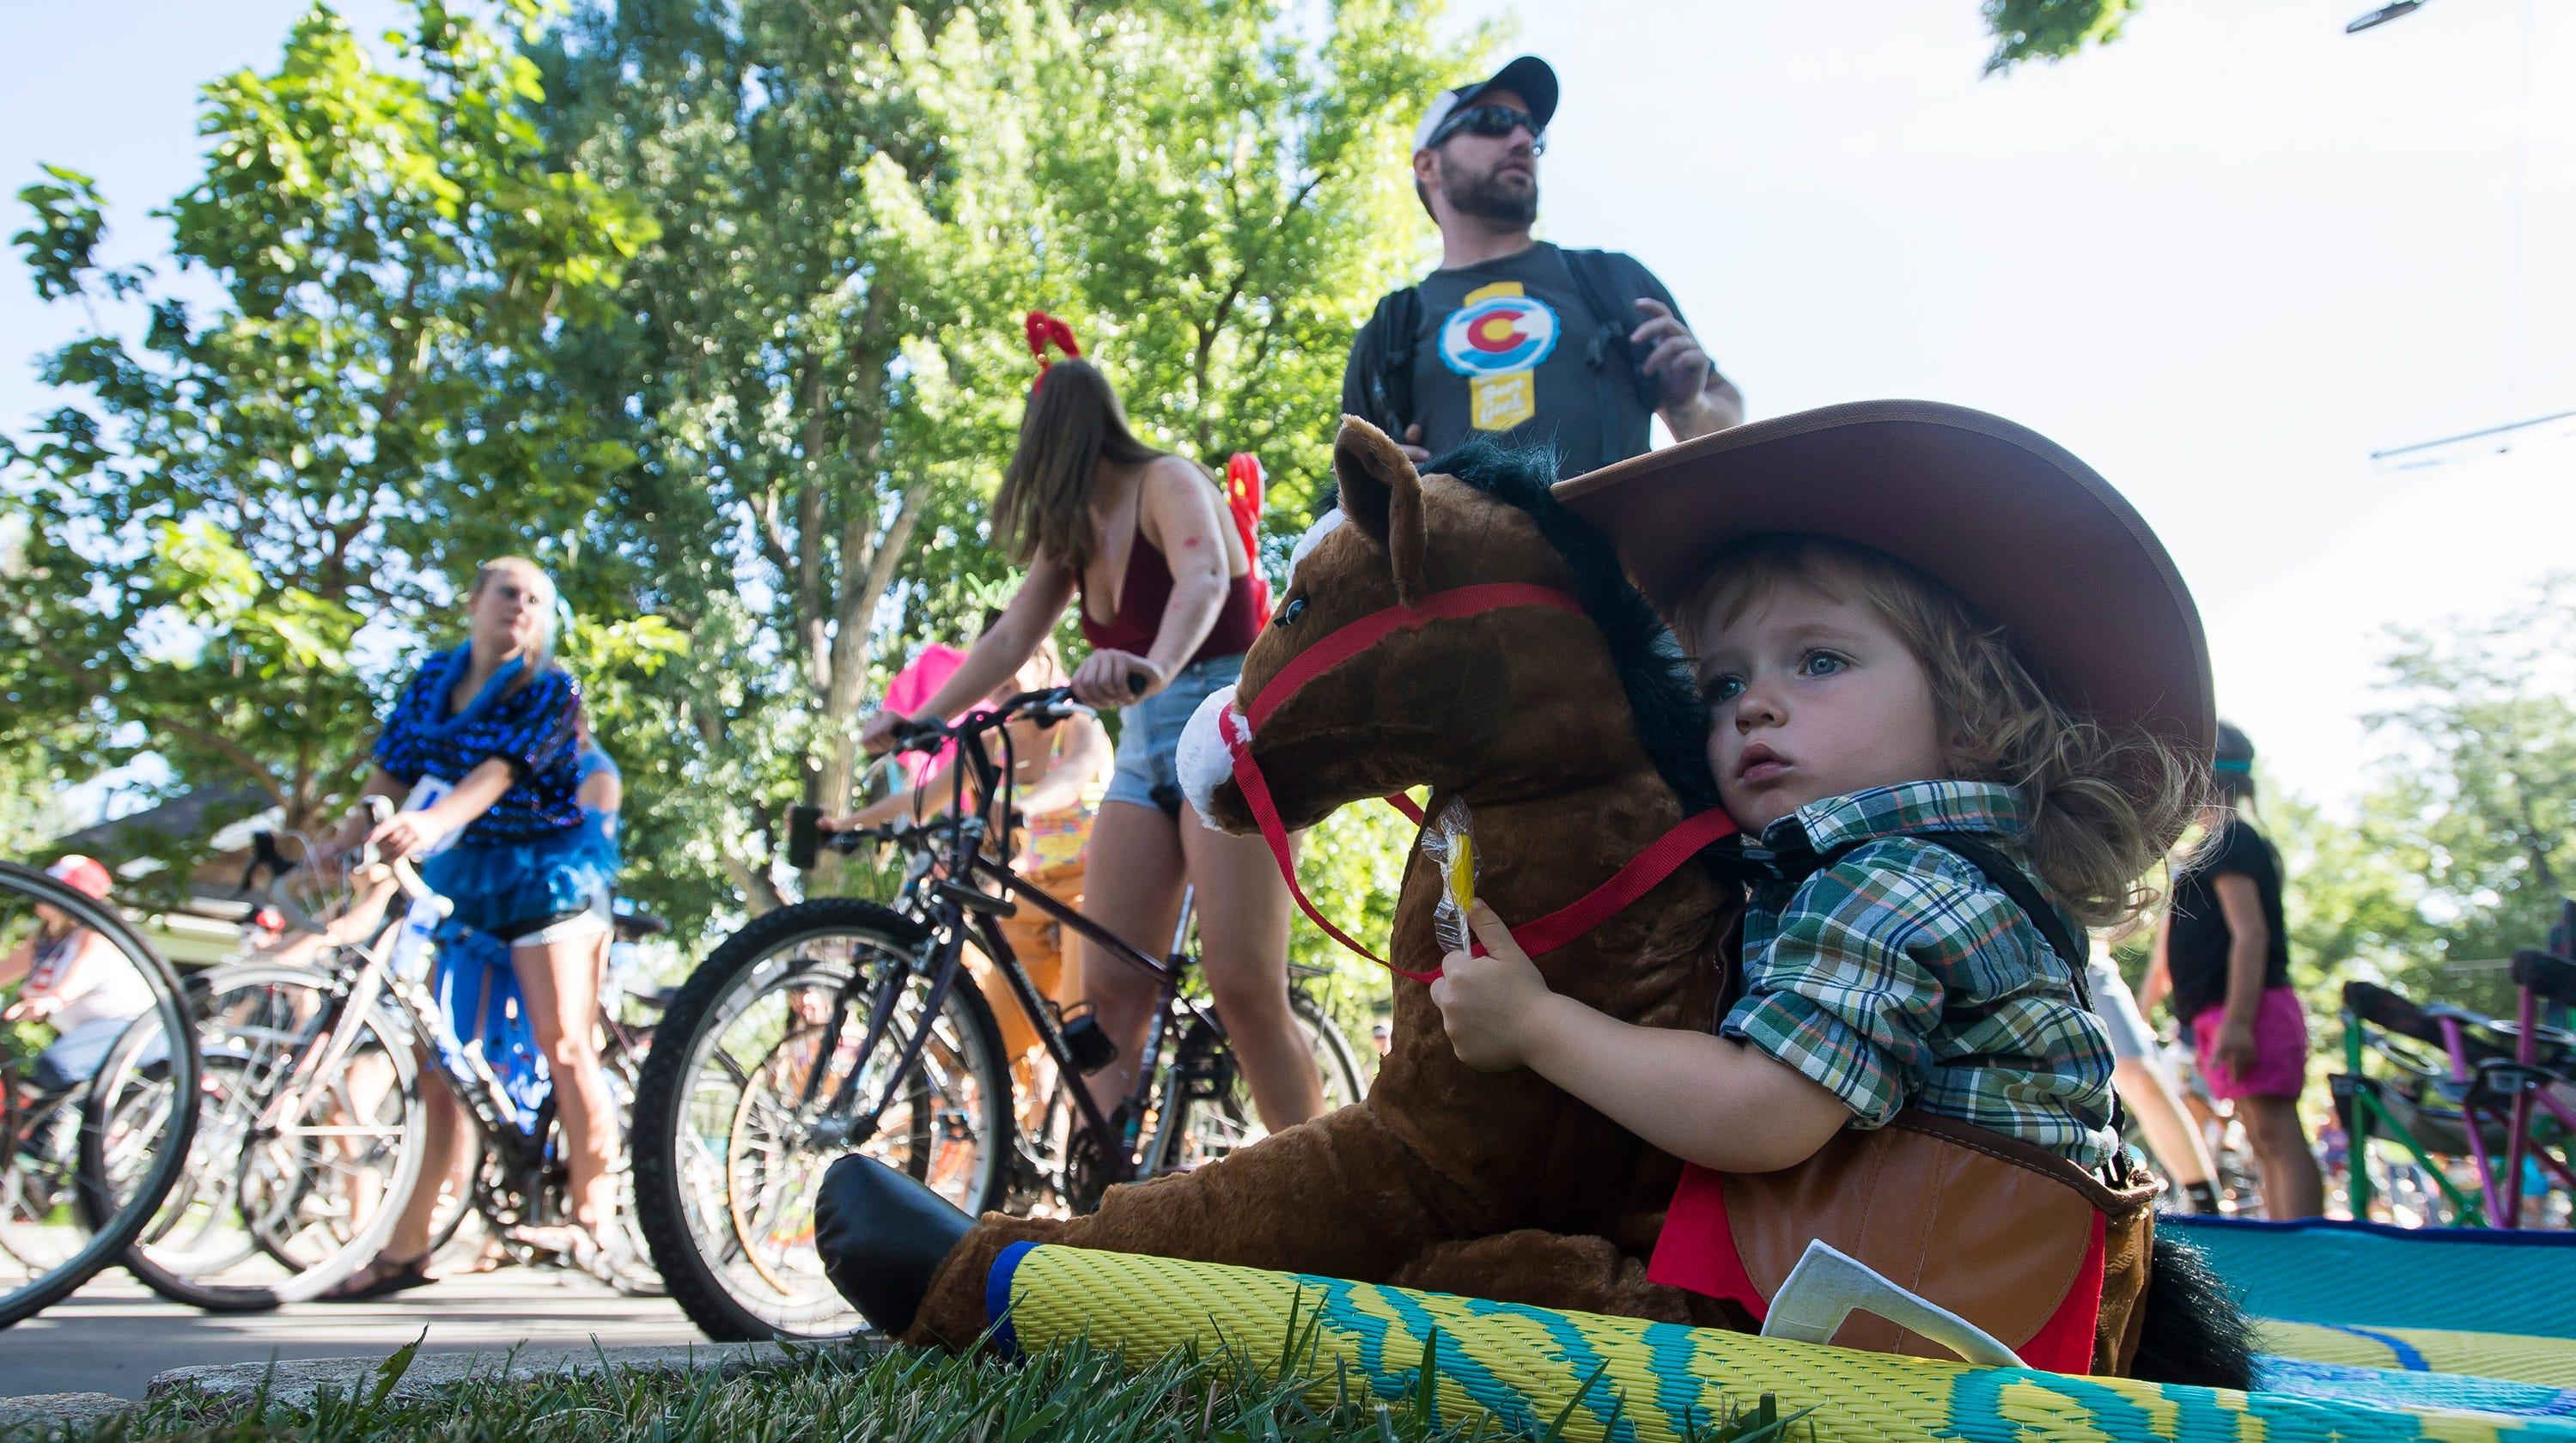 Fort Collins Tour de Fat: Check out costumes, the scene and a pretty amusing emergency radio conversation